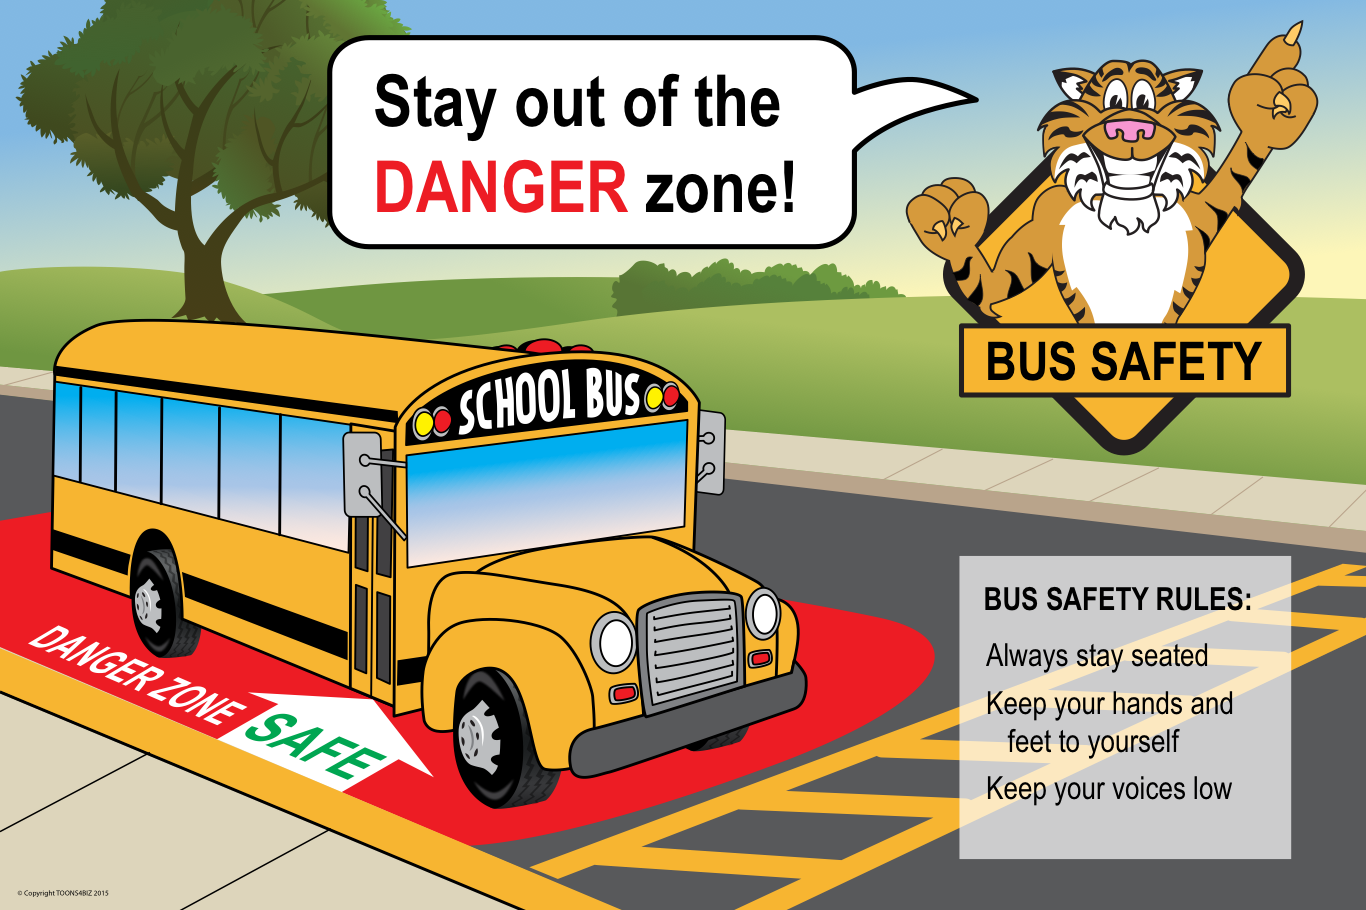 Home School bus safety, Bus safety, School bus